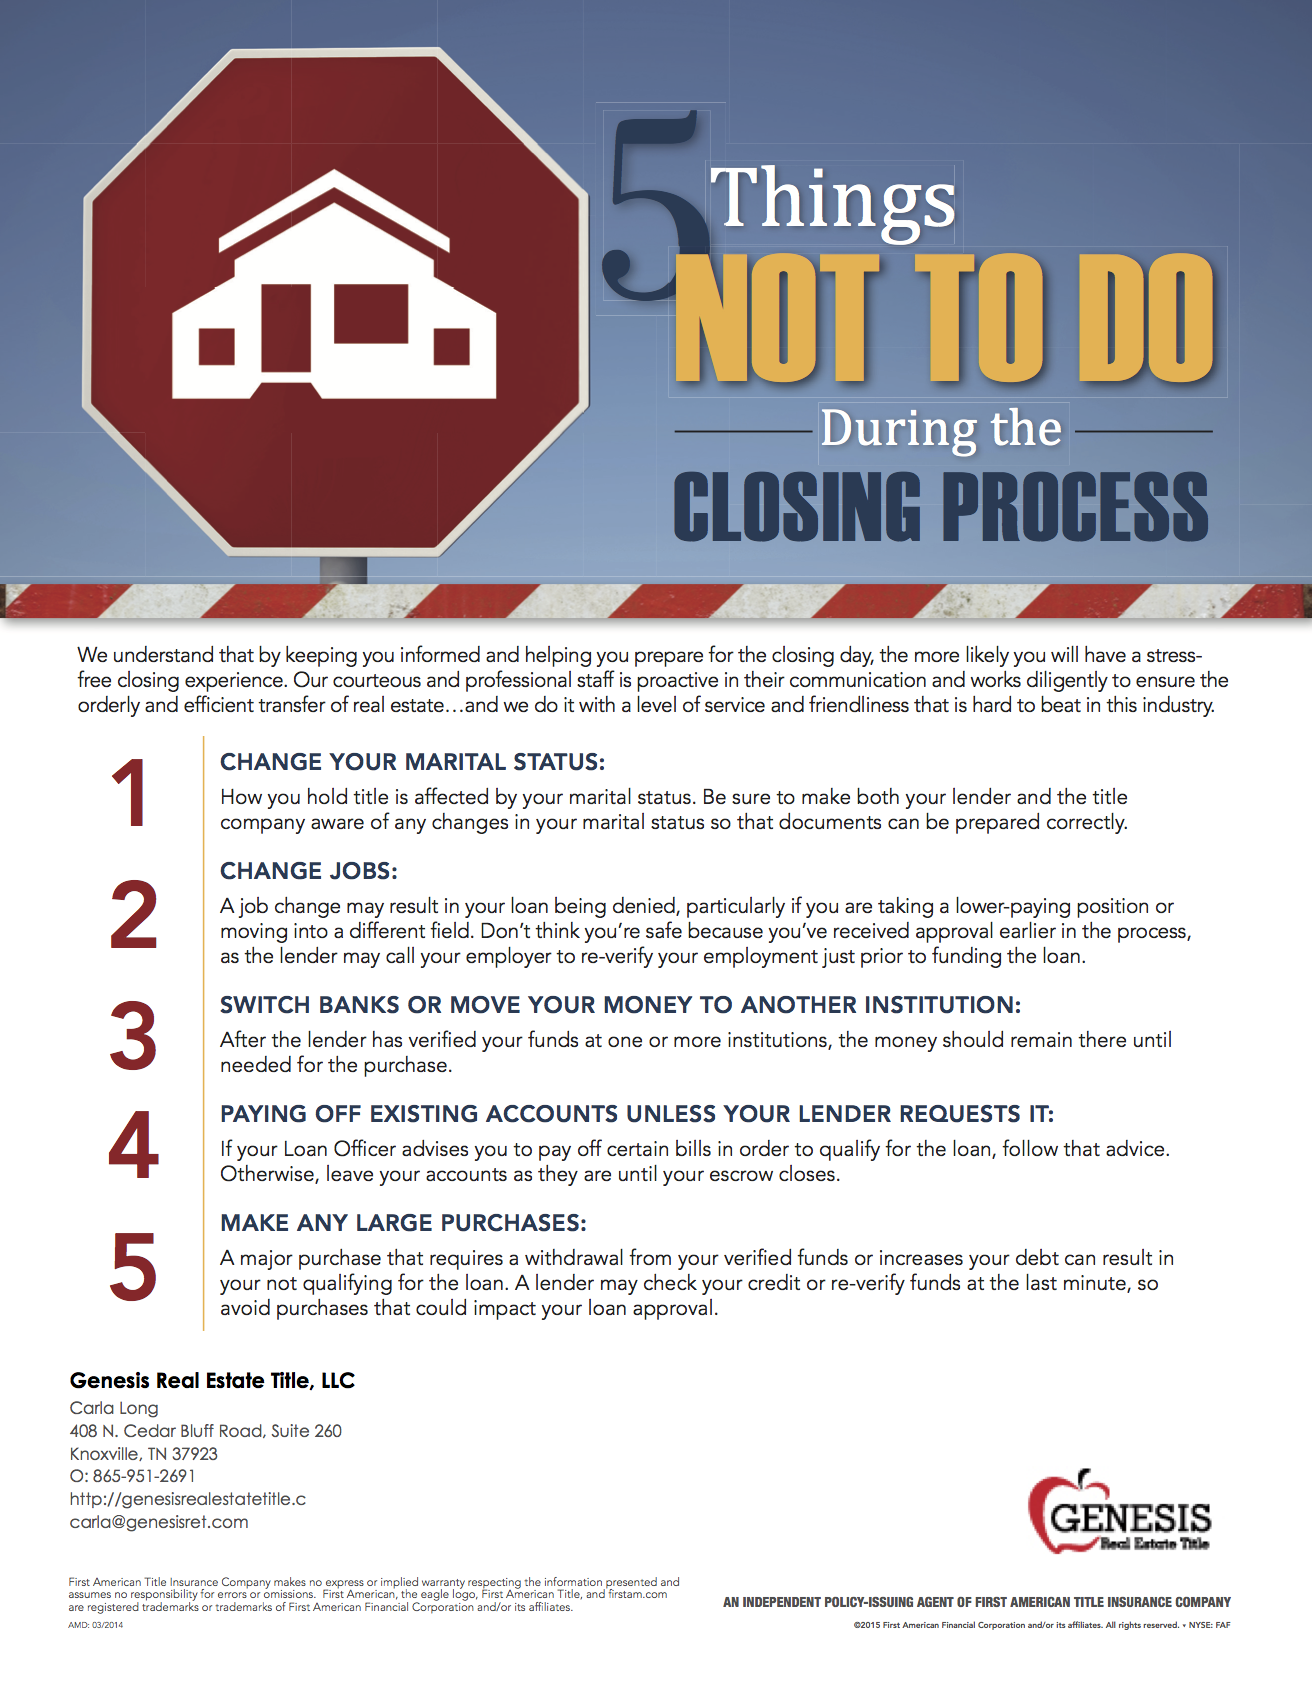 To have a stress-free closing experience, follow these 5 steps.